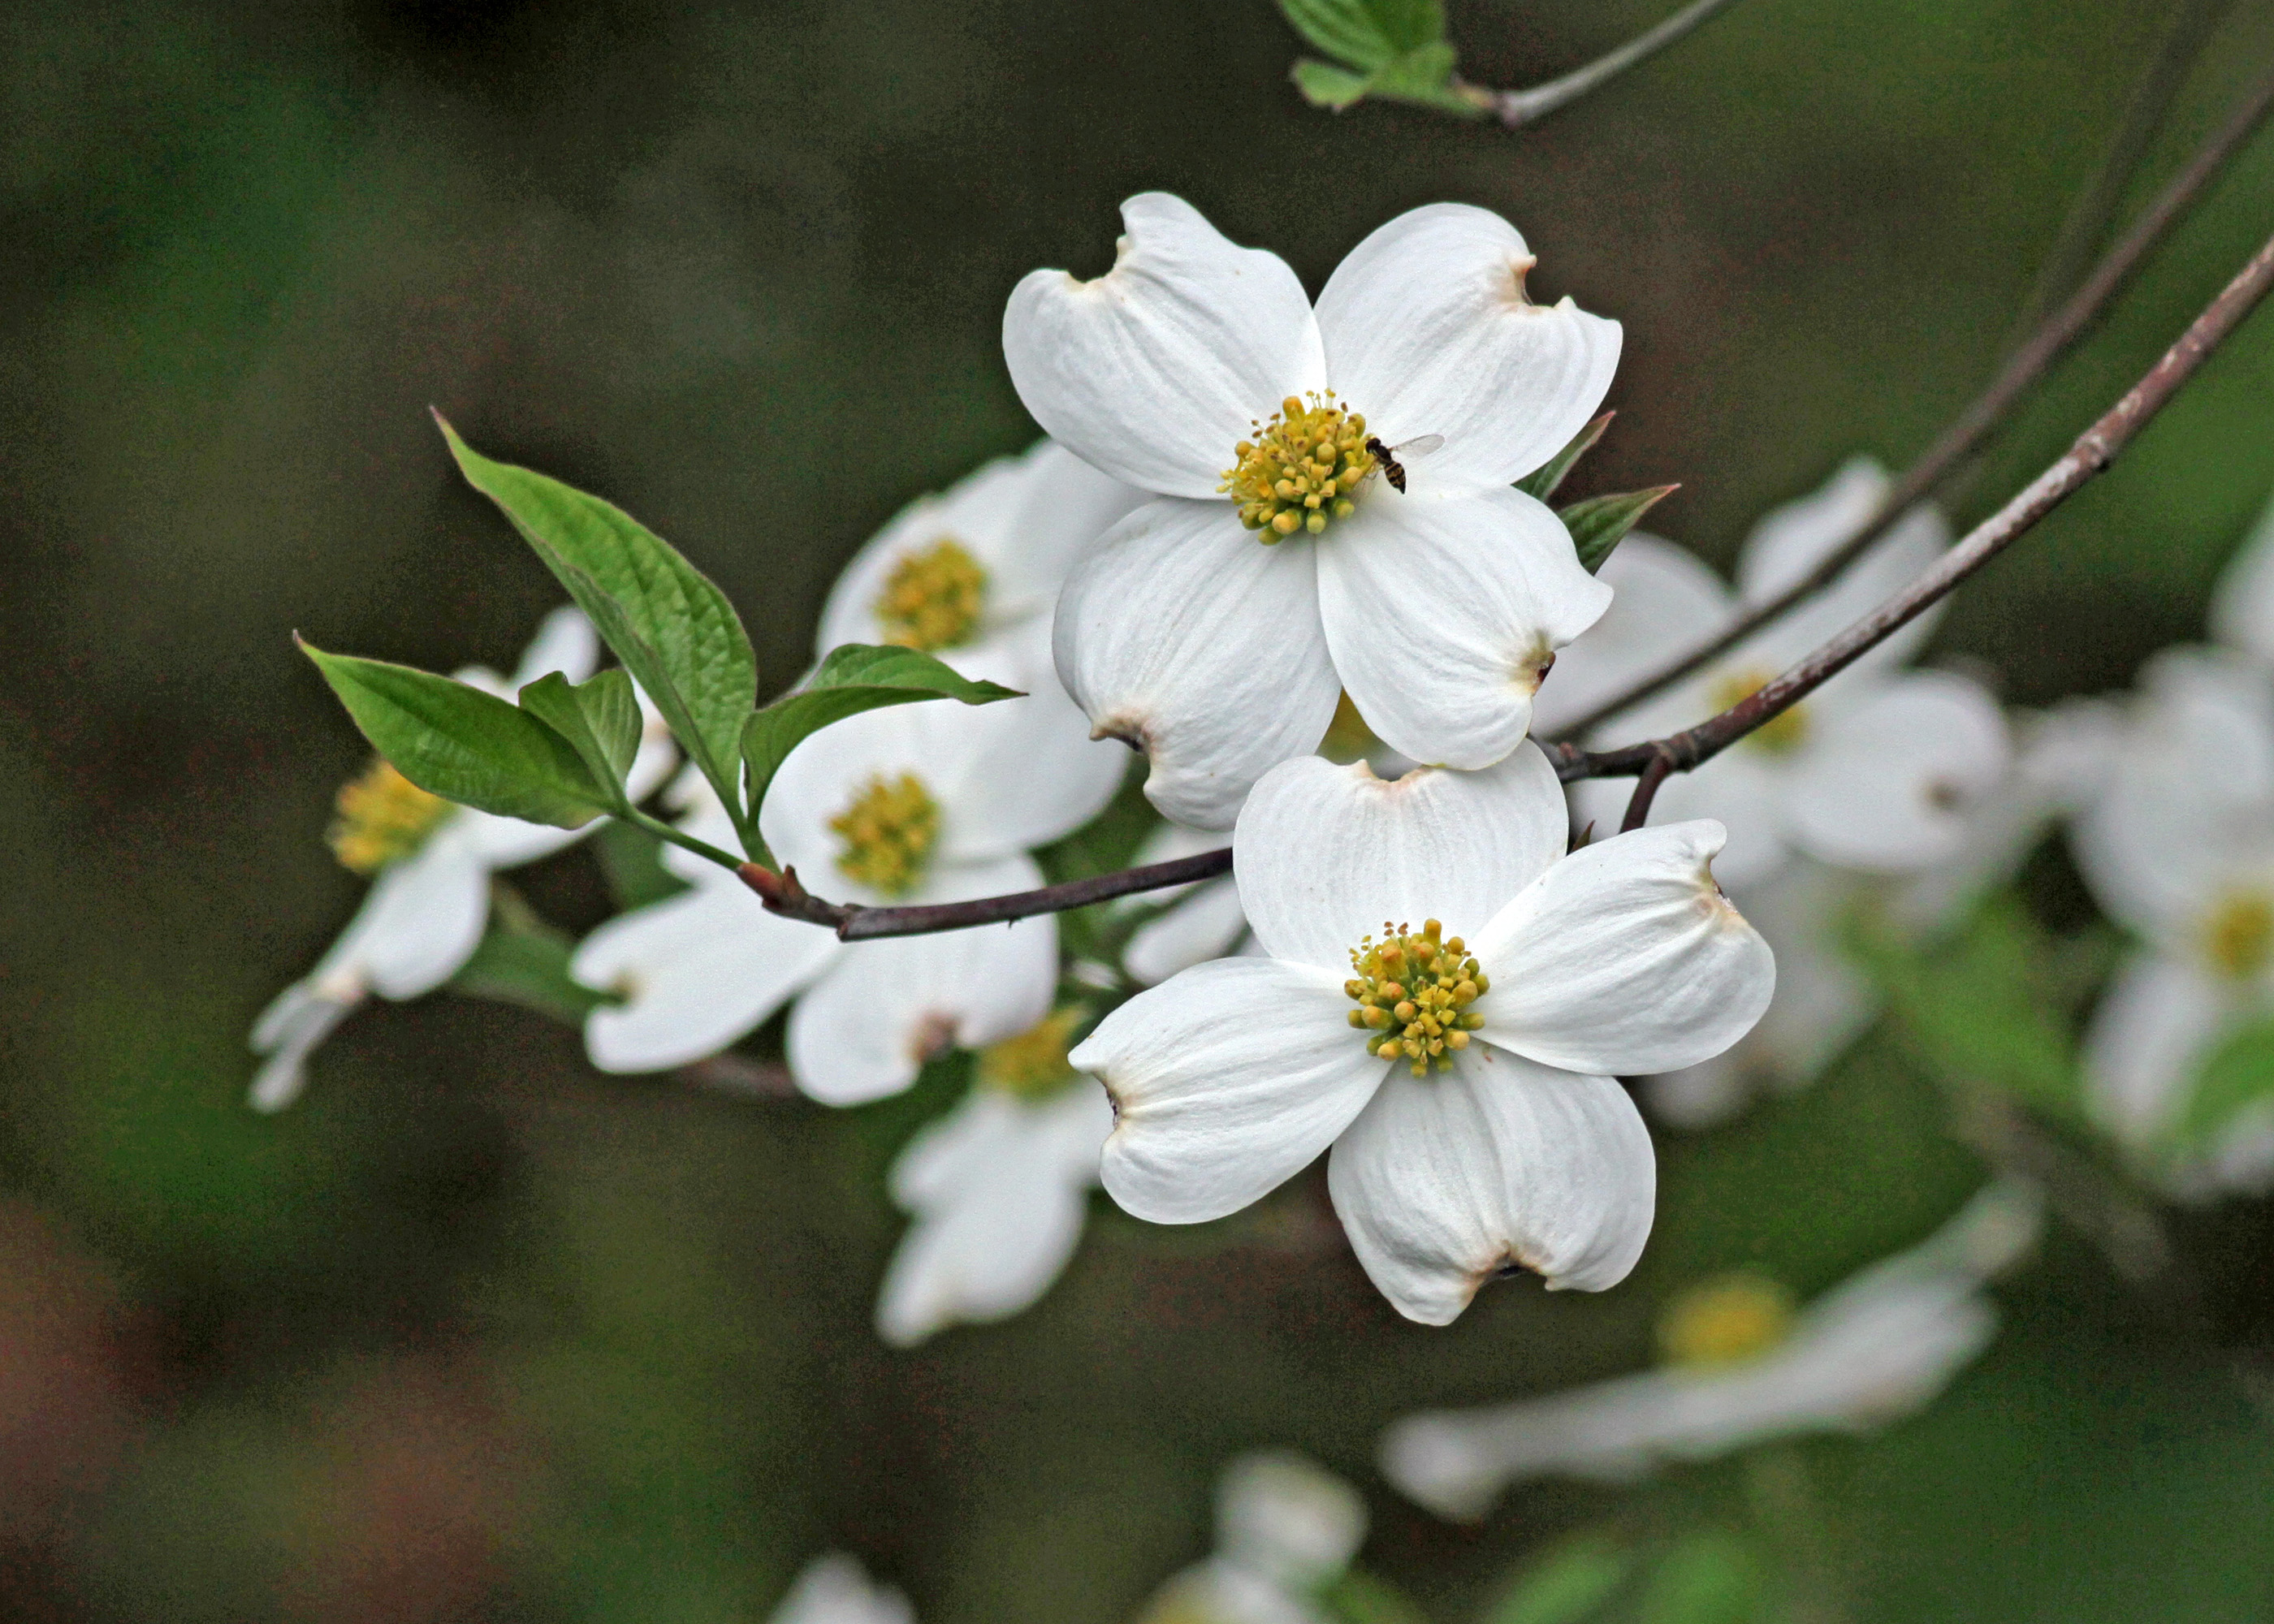 The Scientific Name is Cornus florida [= Benthamidia florida]. You will likely hear them called Flowering Dogwood. This picture shows the Flowering Dogwoods explode with showy white blossoms in mid-spring.  True flowers are tiny and surrounded by 4 showy, bright white leafy bracts.  of Cornus florida [= Benthamidia florida]